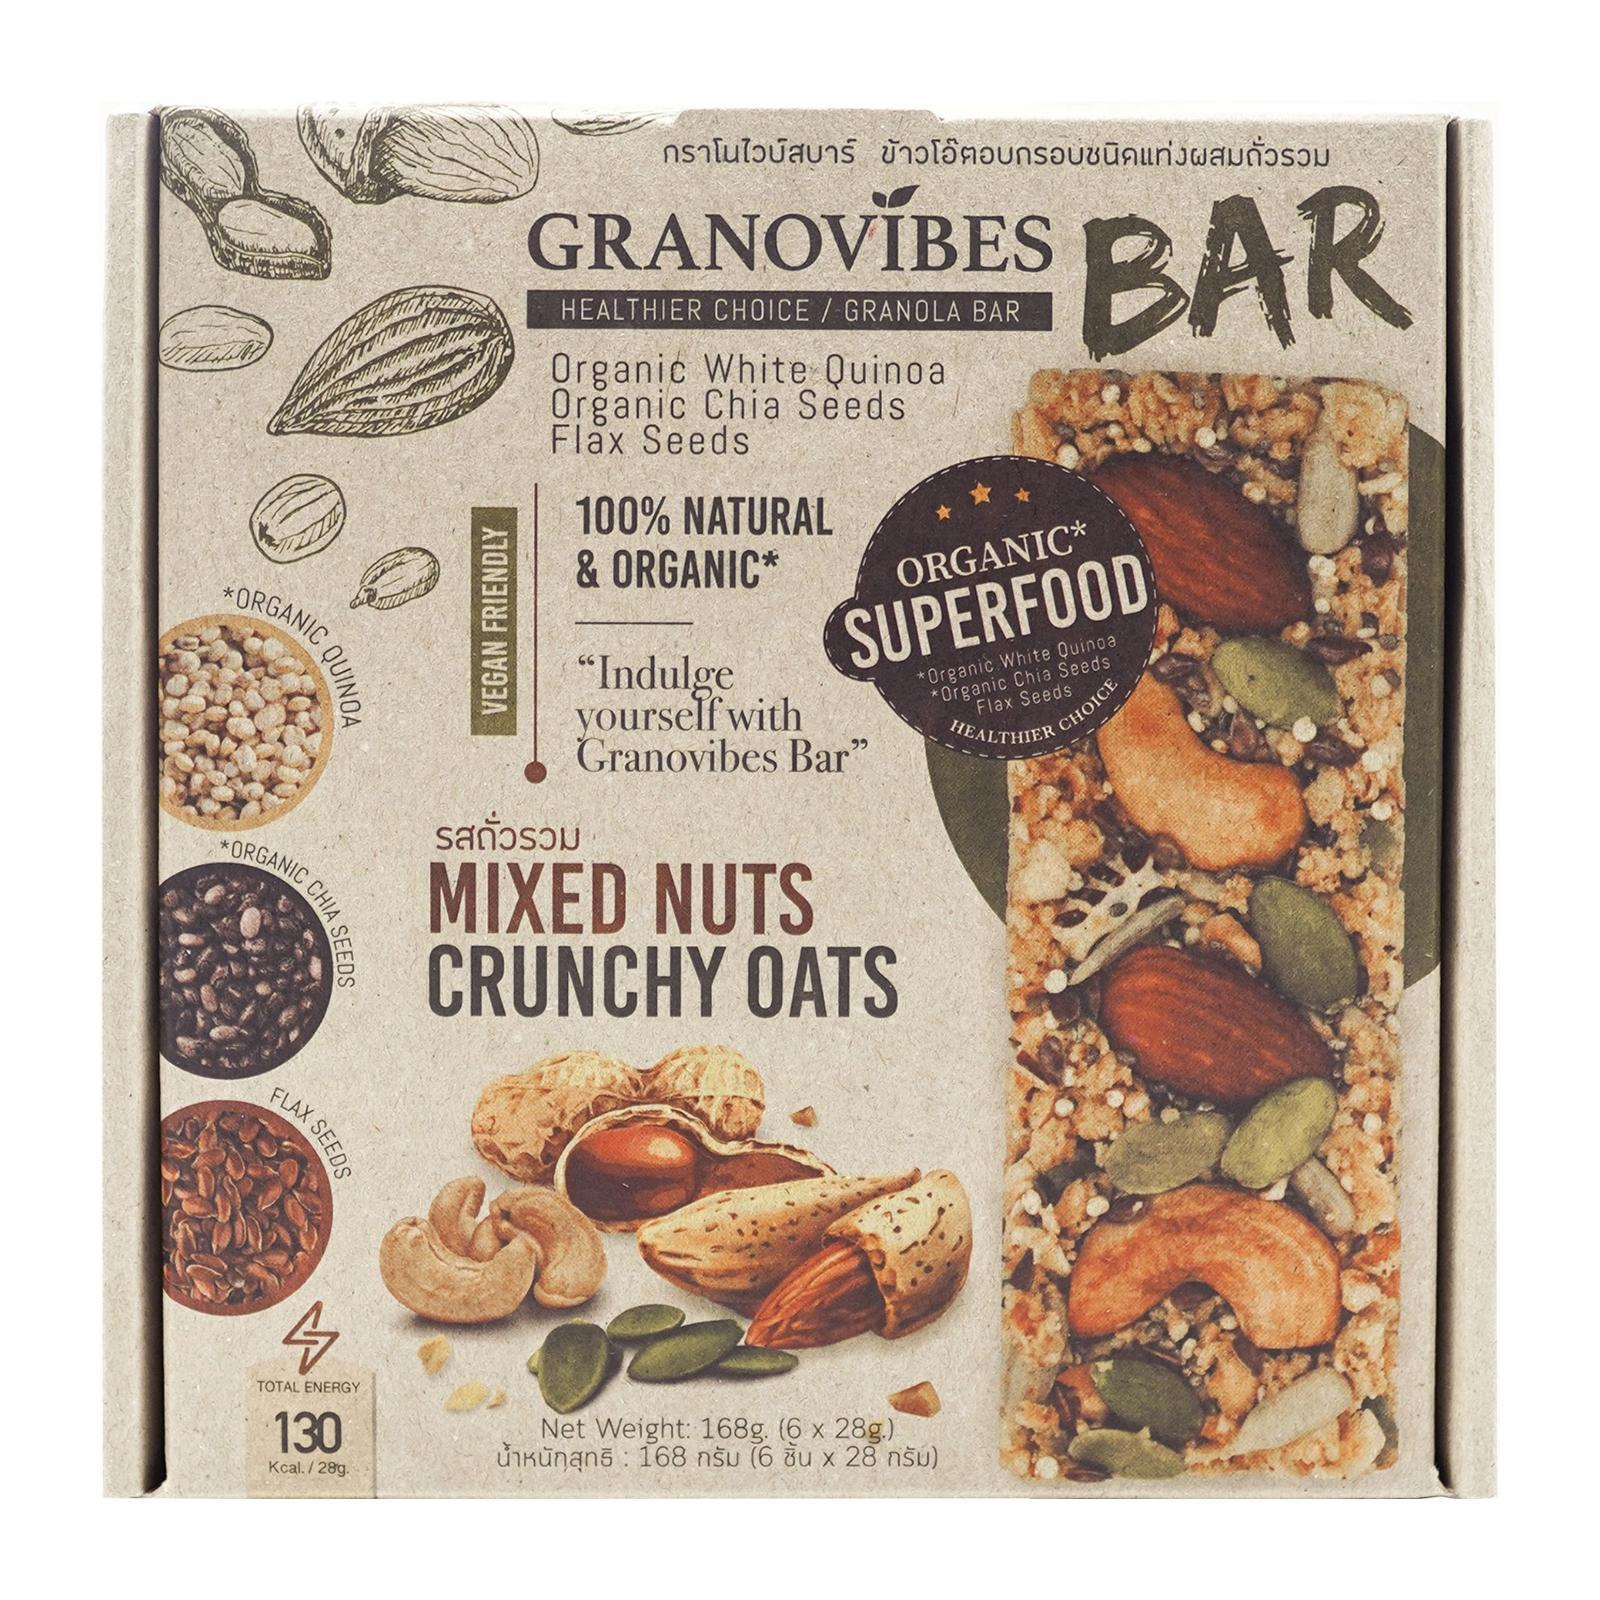 Granovibes Mixed Nuts Crunchy Oats Granola Bar